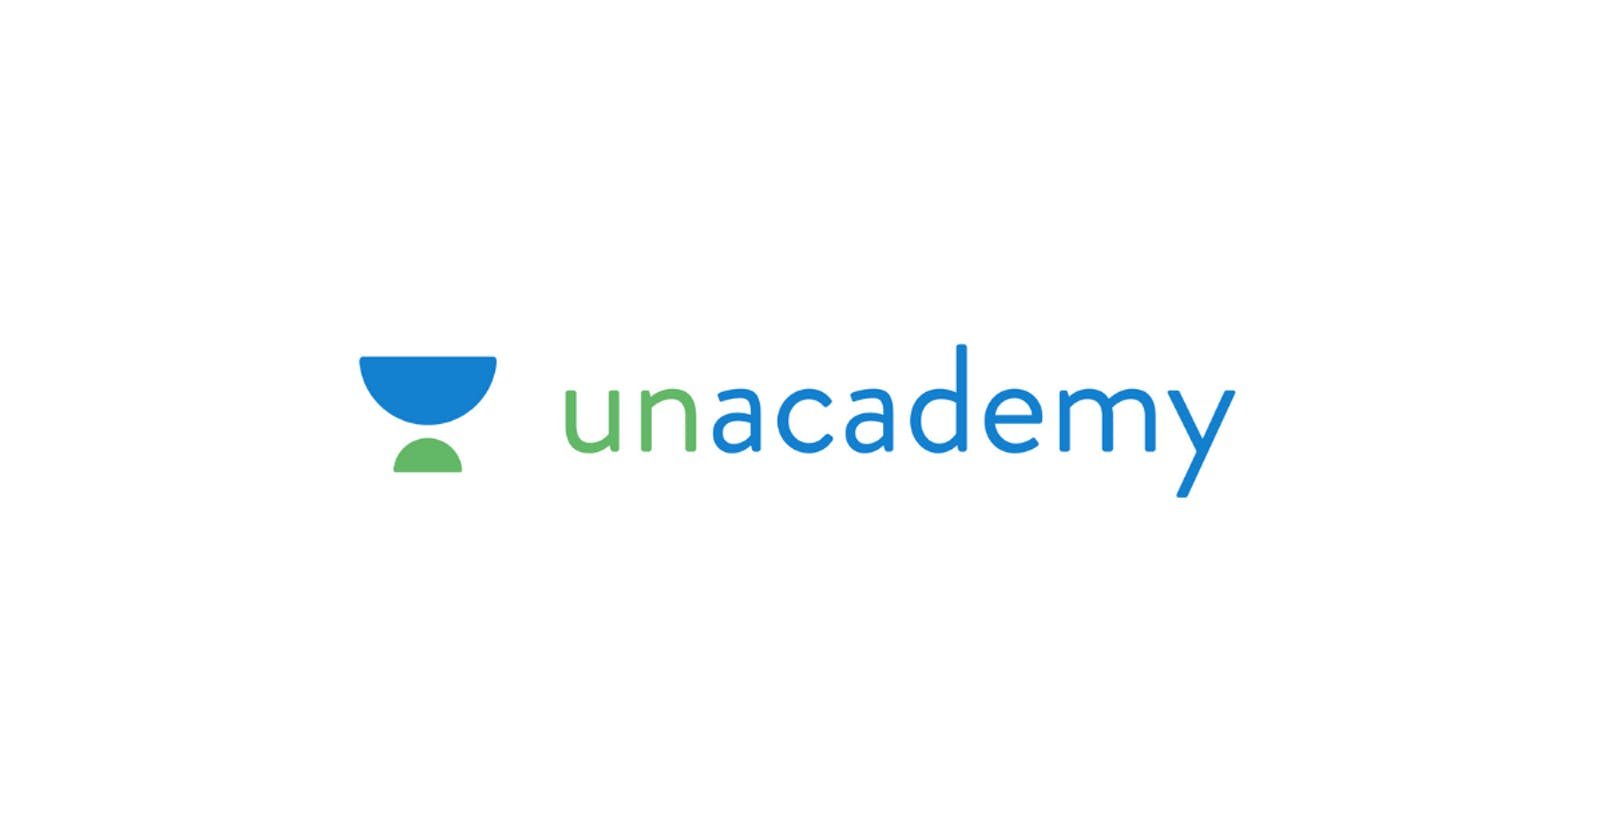 🧑🏫 Unacademy Interview Experience - Software Engineer, Web